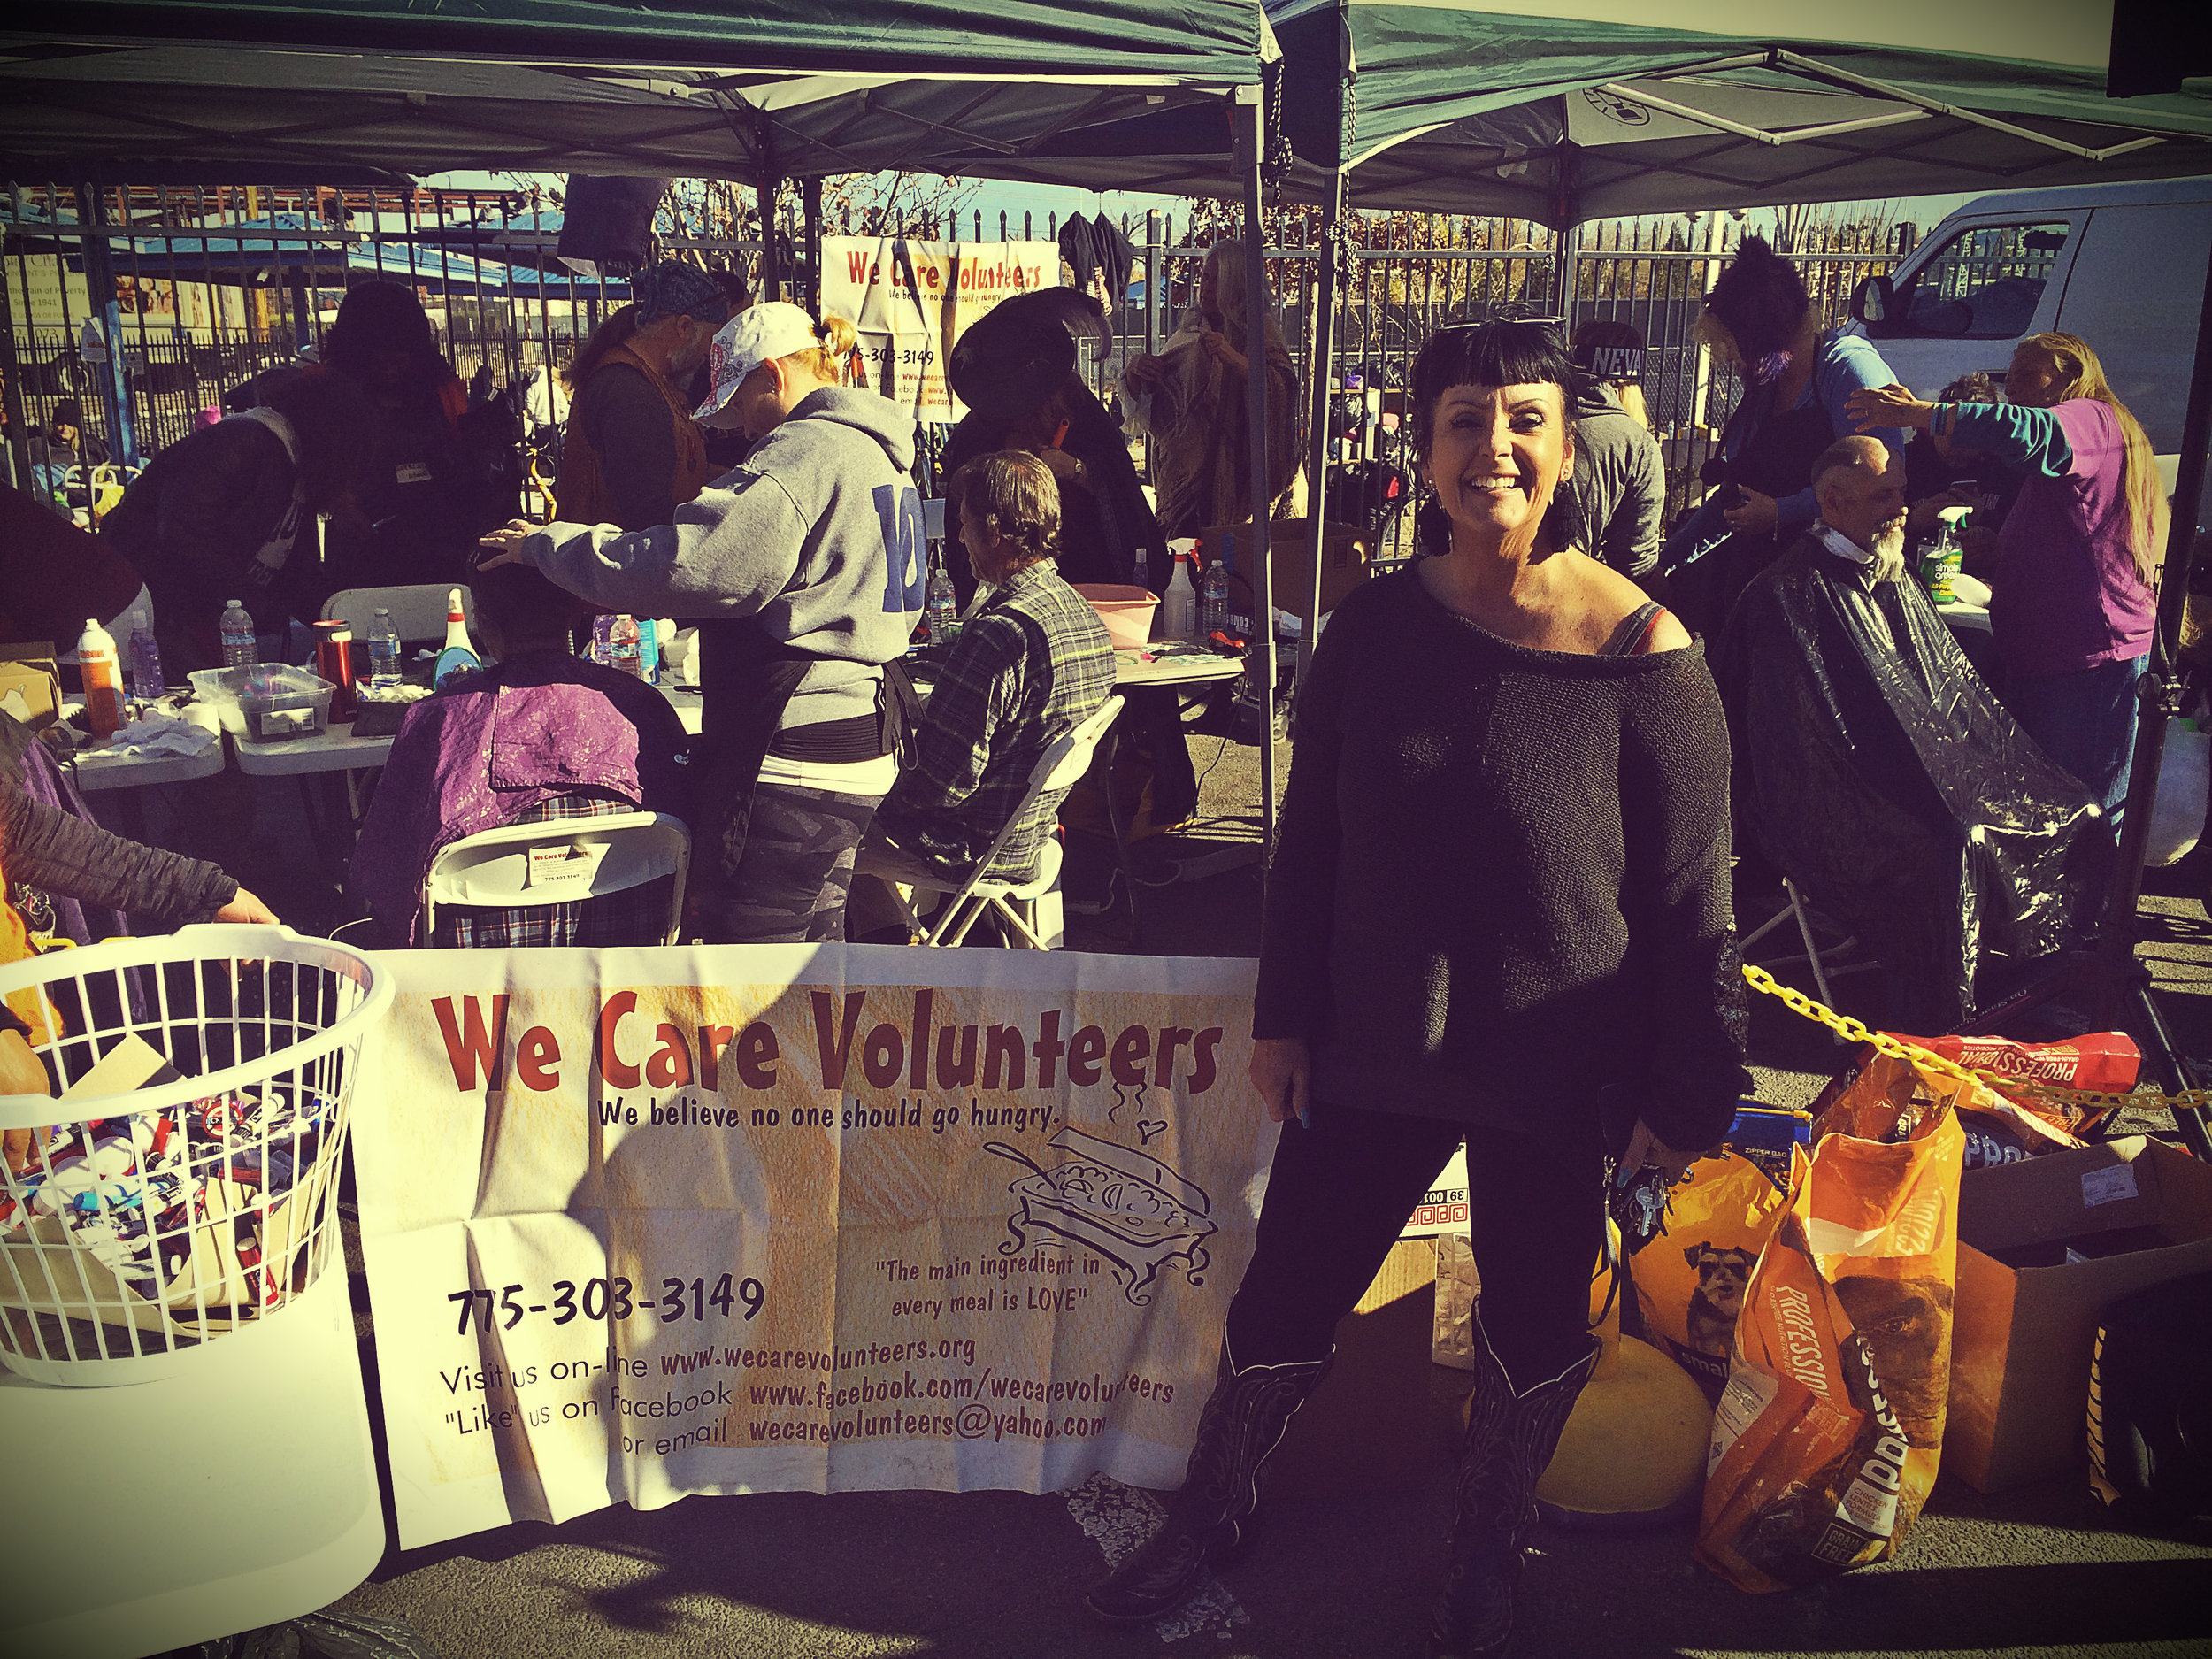 """How to turn good ideas into even better activism? Meet Amber Dobson, the coordinator of the We Care Volunteers, which has two taglines to its main logo: """"We believe no one should go hungry"""" and """"The main ingredient in every meal is LOVE."""""""